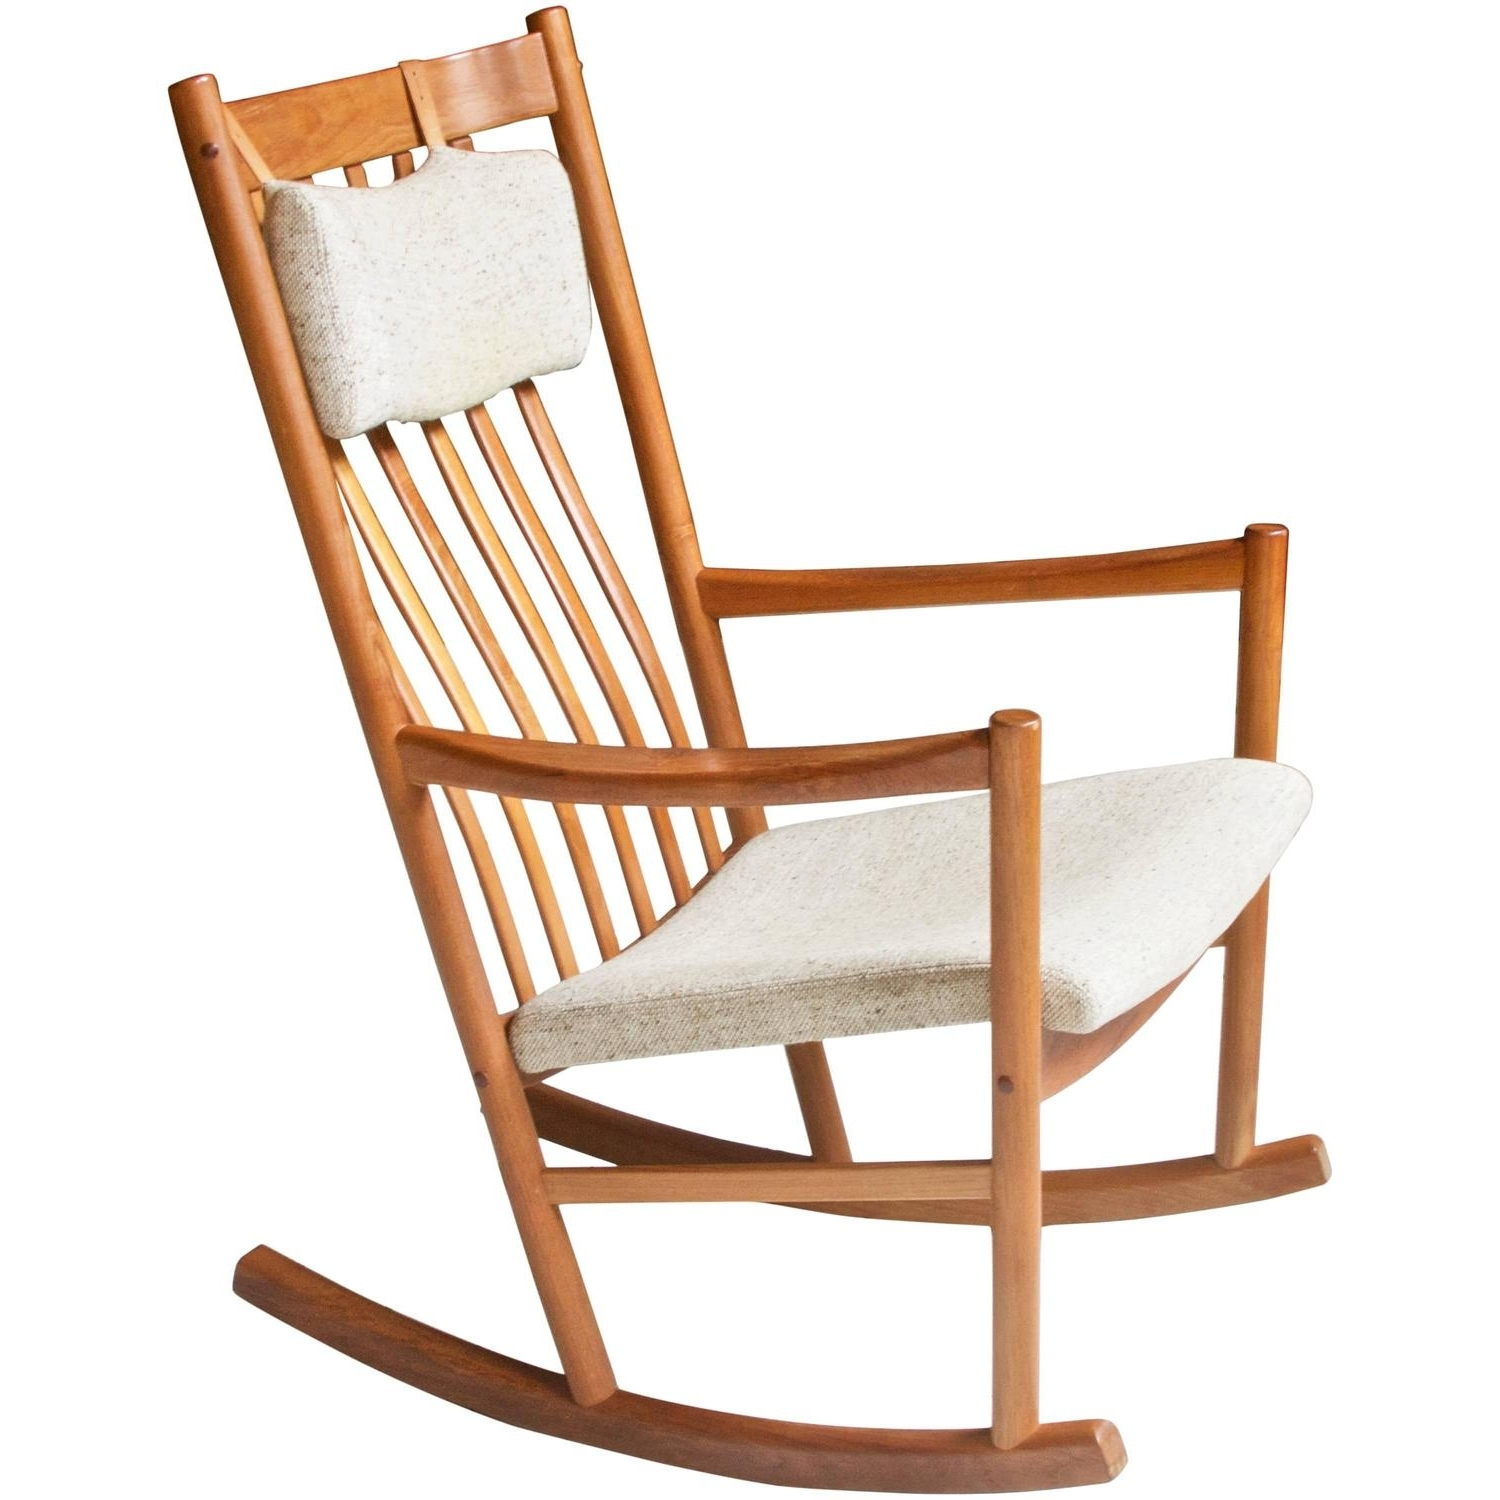 Retro Rocking Chairs For Fashionable Pair Of Vintage Rope Seat Rocking Chairs For Sale At 1Stdibs (View 6 of 15)